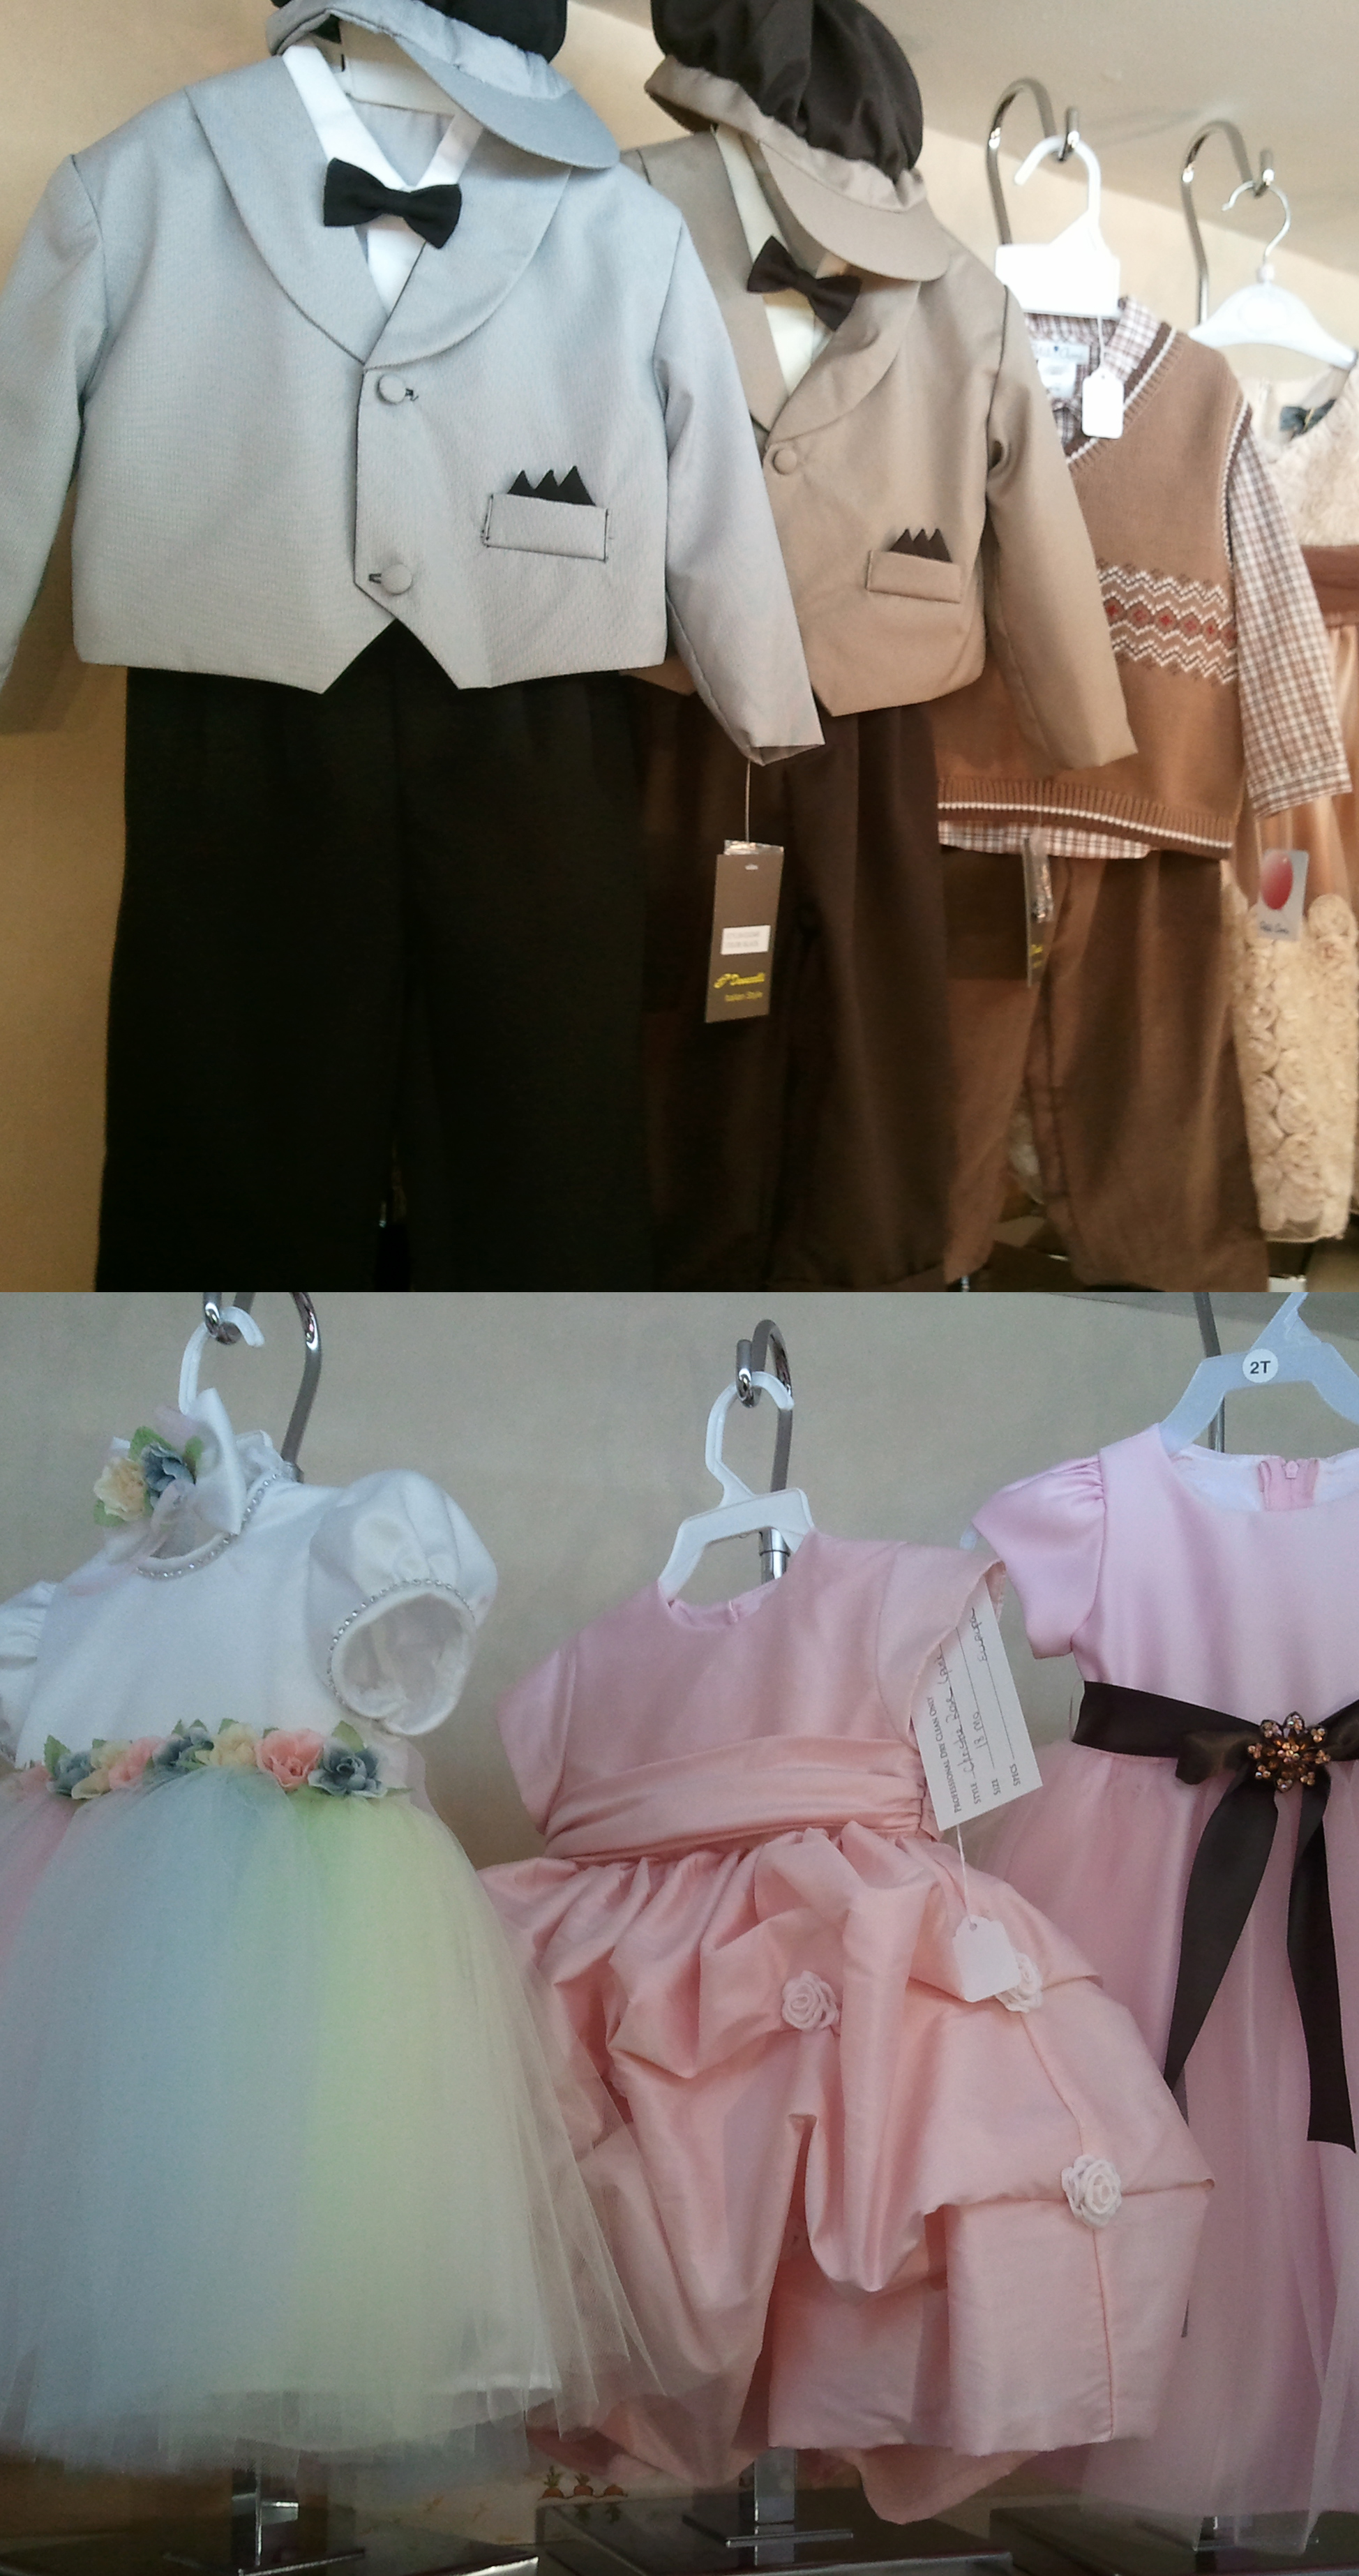 Europa specializes in communion gowns but also stocks christening outfits, suits, party dresses, coats, baby layettes, shoes, bibs, blankets, hats, jewelry, and accessories.